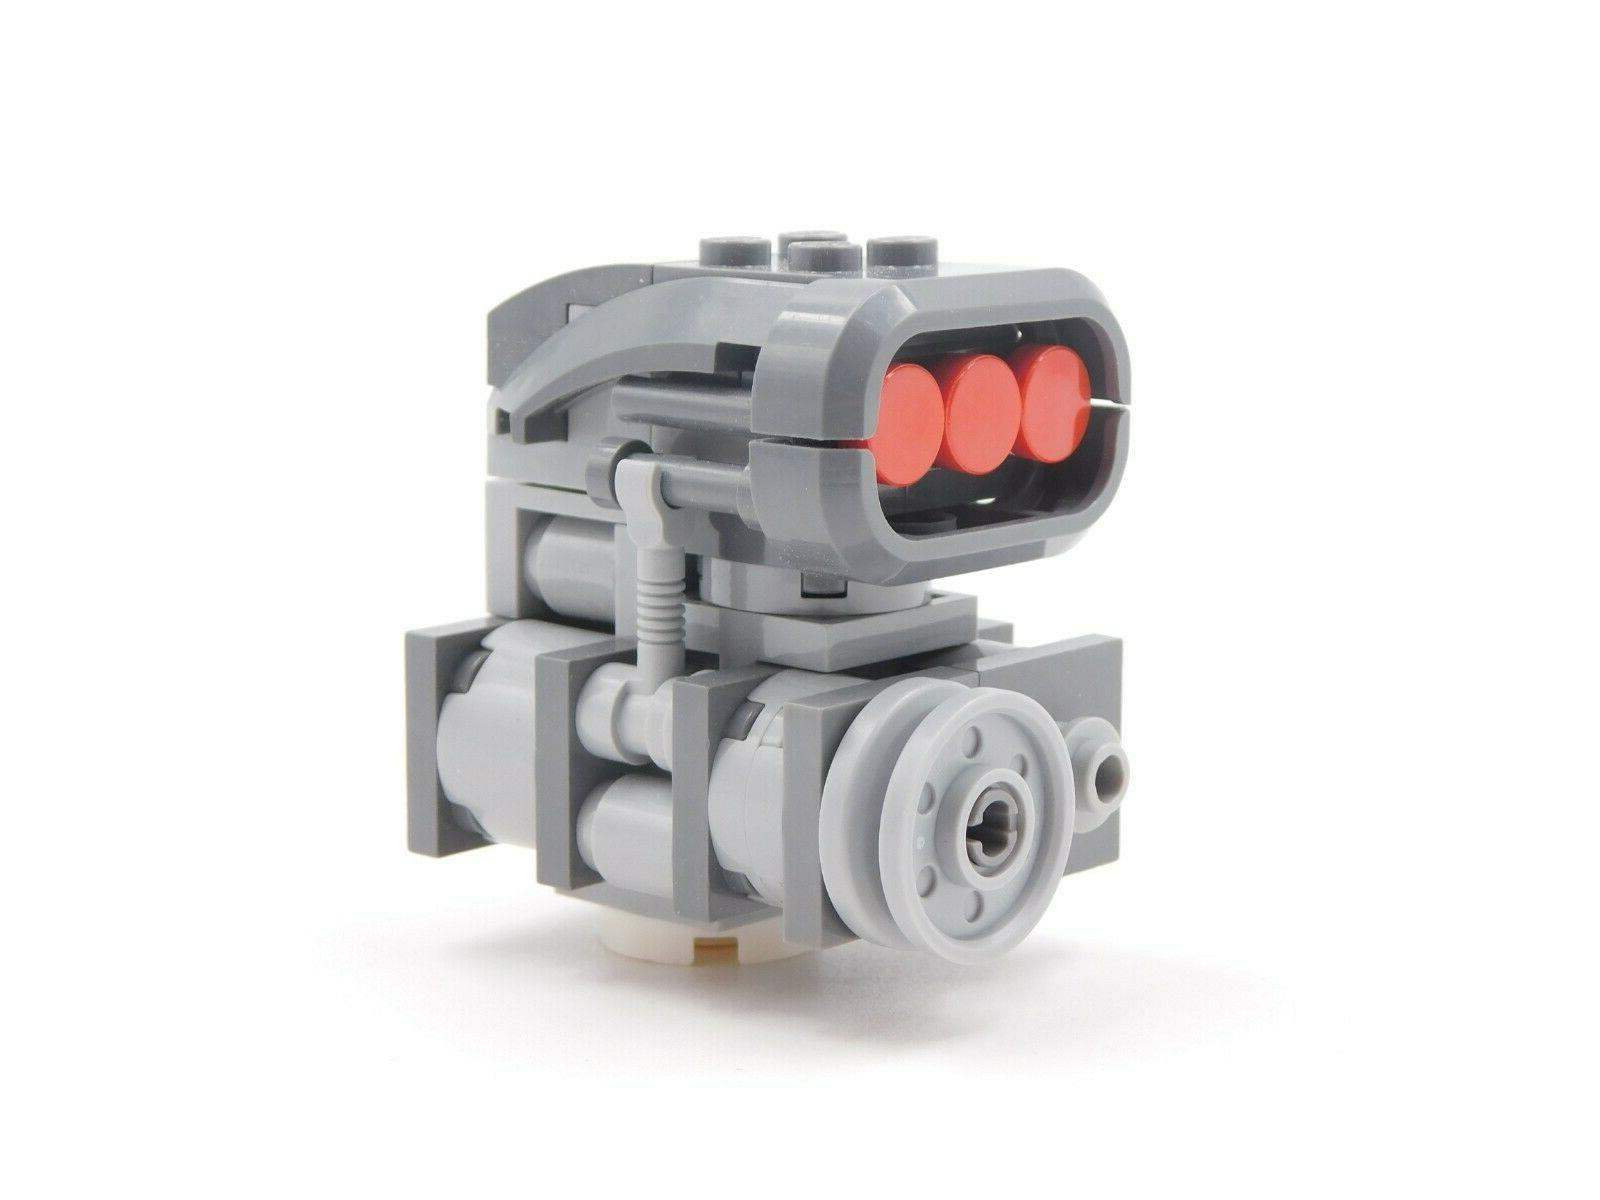 LEGO ENGINE CAR TRUCK SET